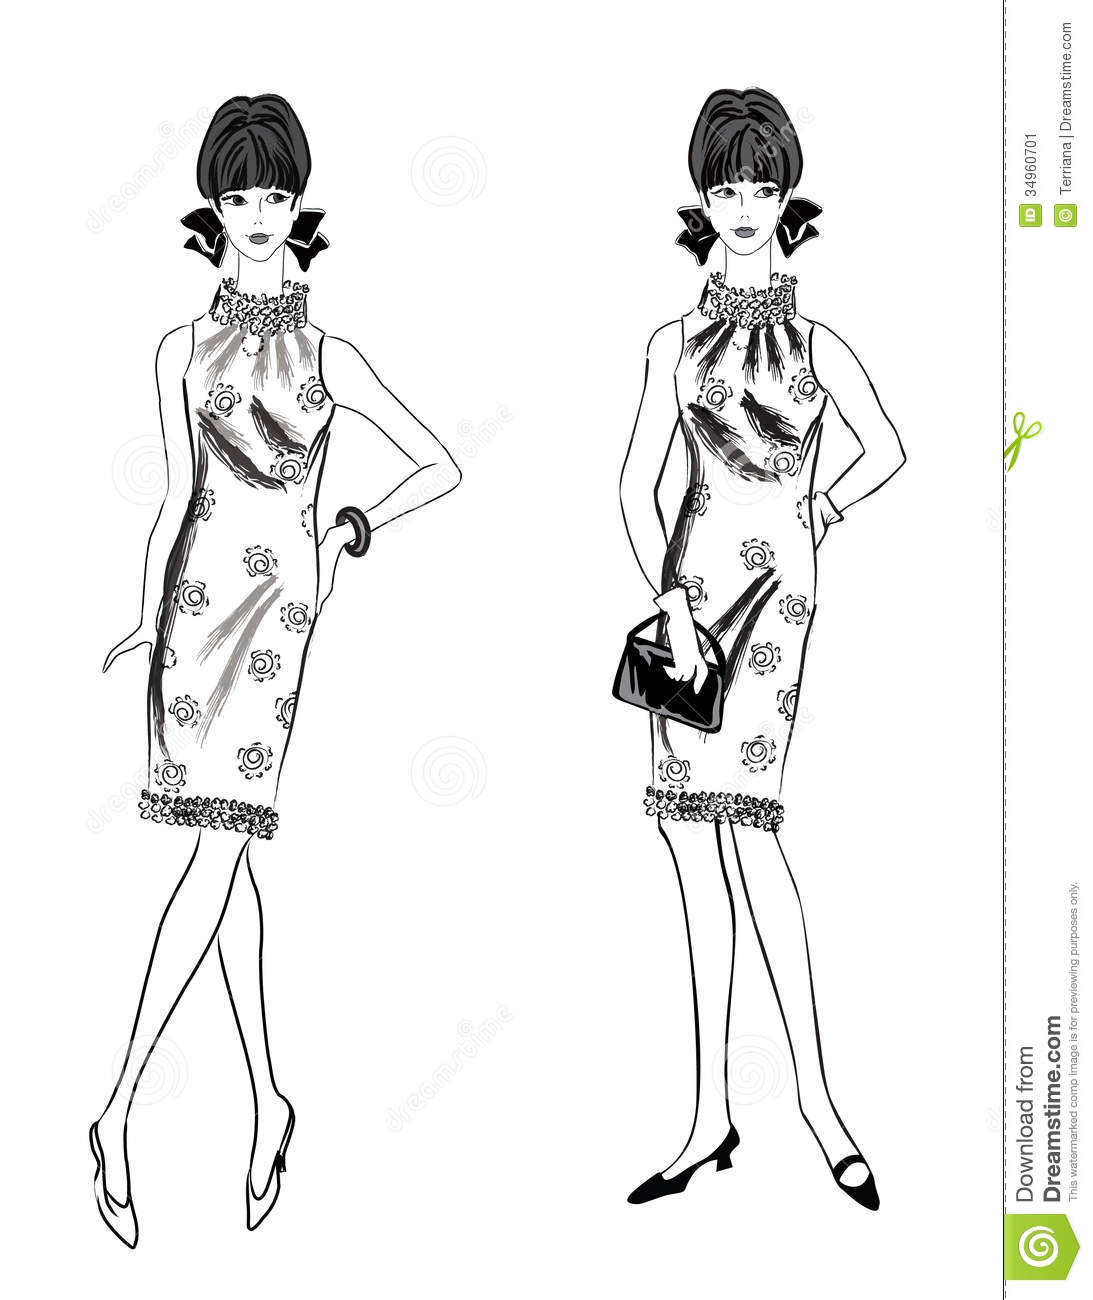 Bowling Clipart together with Search further Stock Photography Fashion Dressed Women 1950 S 1960 S Style Image29503462 further 428967933232551035 also Barefoot Bike Ride. on vintage shoes drawing